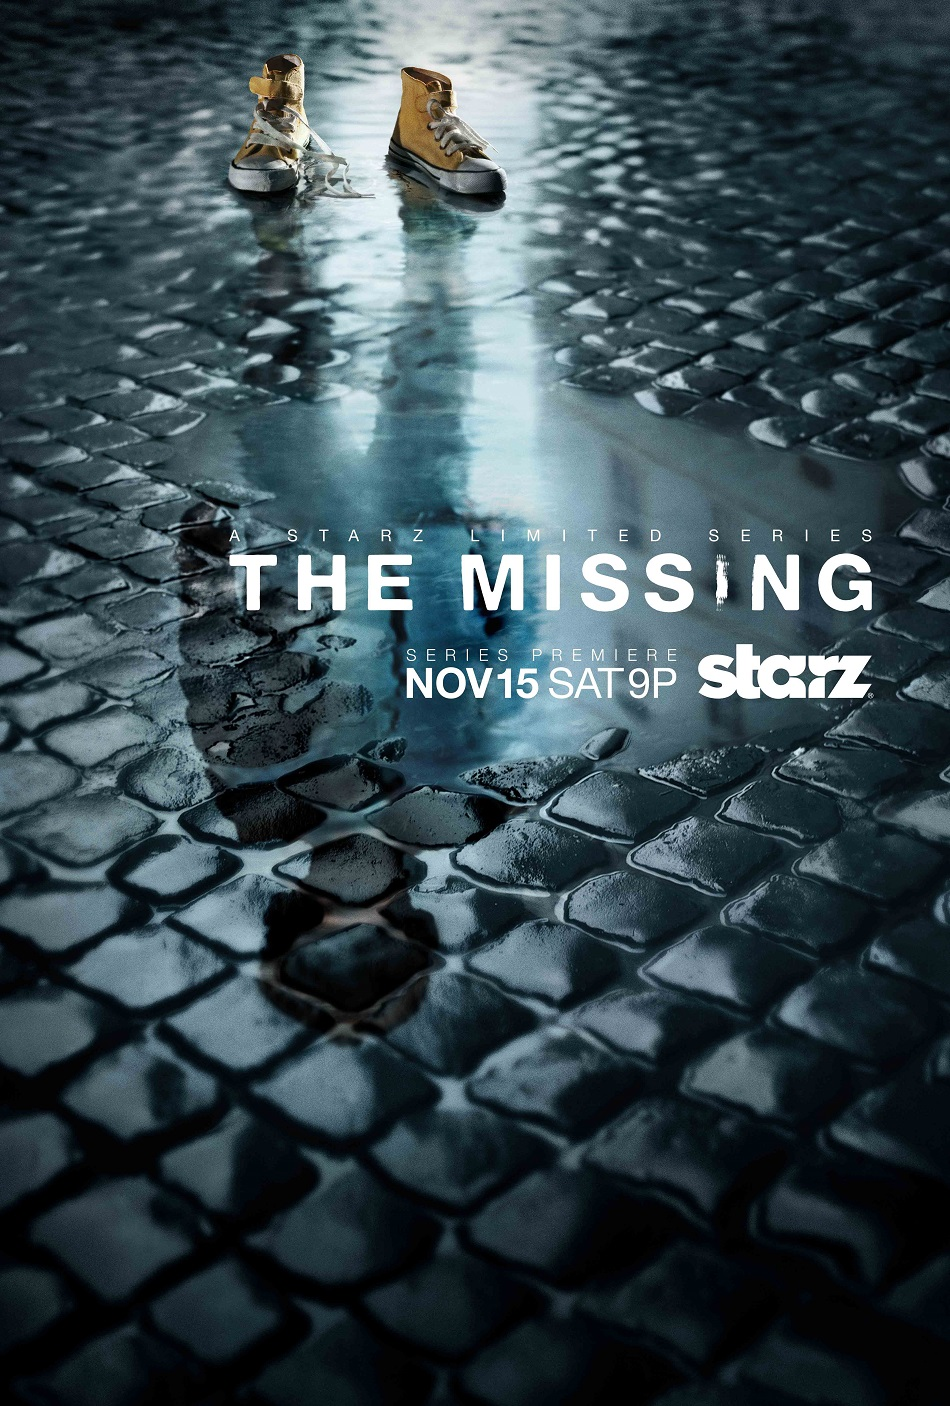 The Missing - Key Art